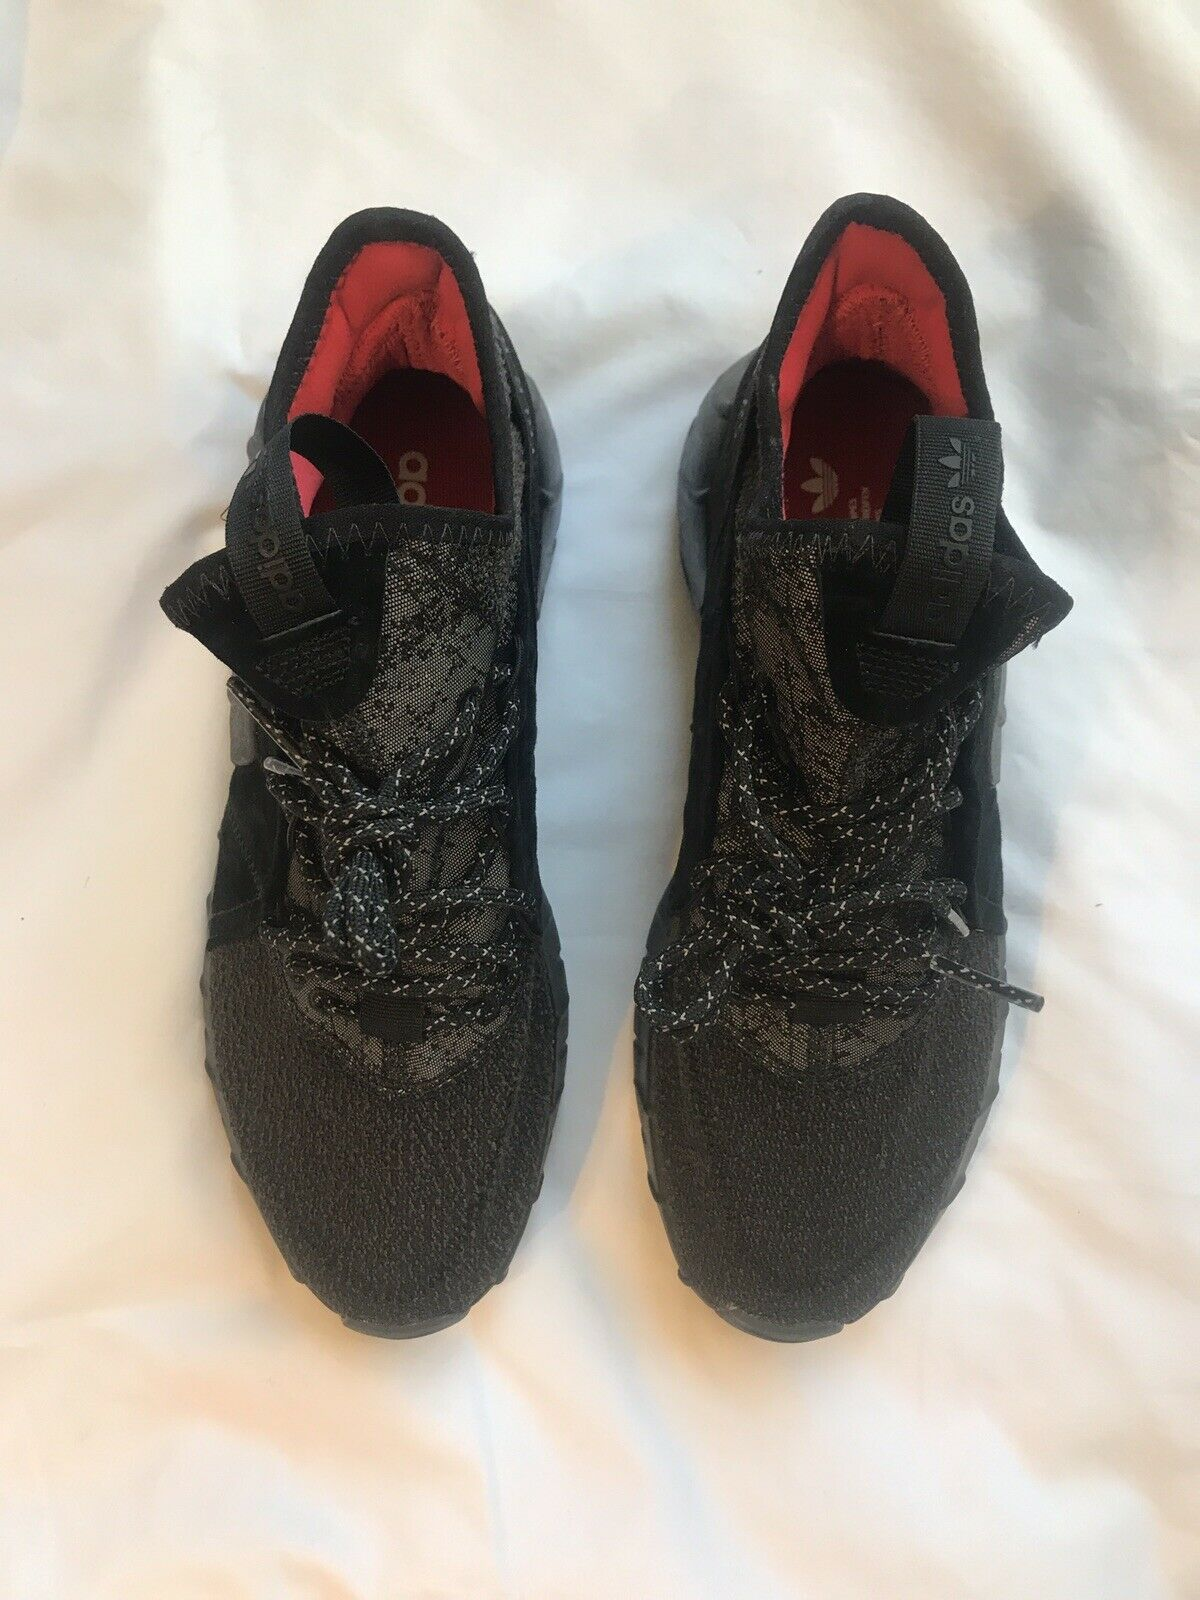 TBLR.RS Adidas Tubular Rise black, grey   core red Mens Sneakers Size 7.5